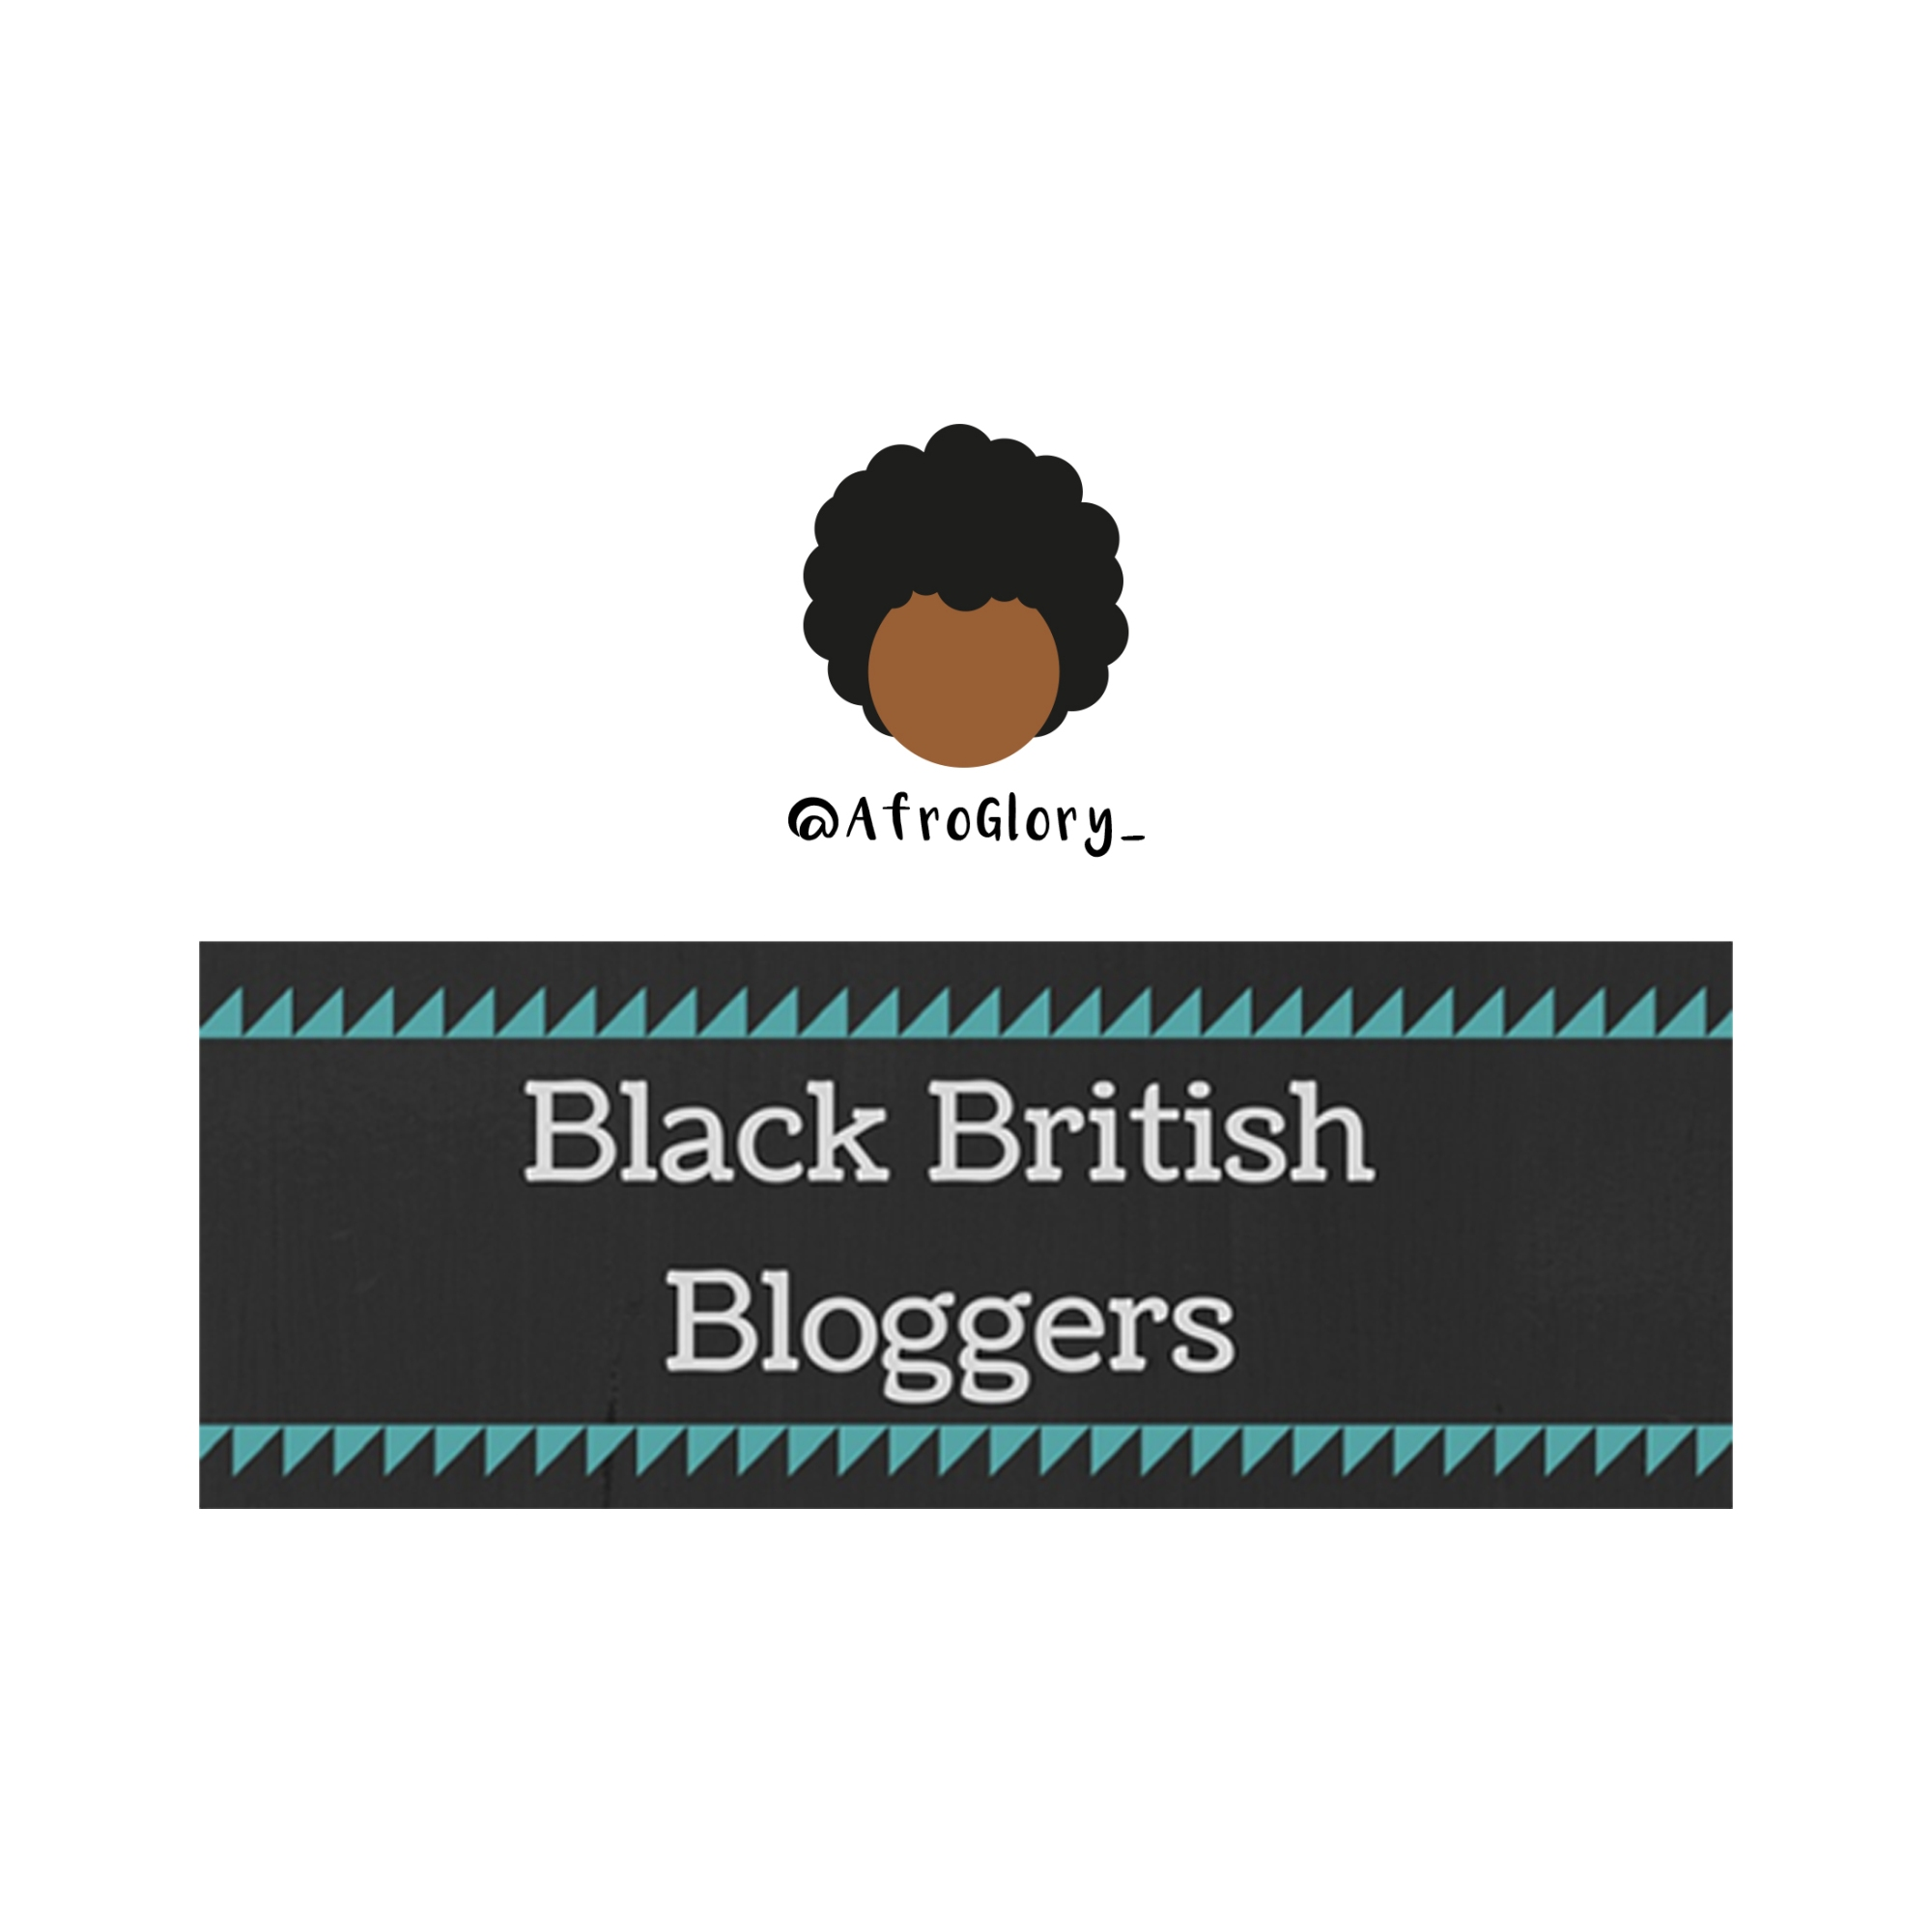 black-british-blogger-afro-hair-natural-care-review-logo-graphic-design-london-afro-glory-event-shoreditch-